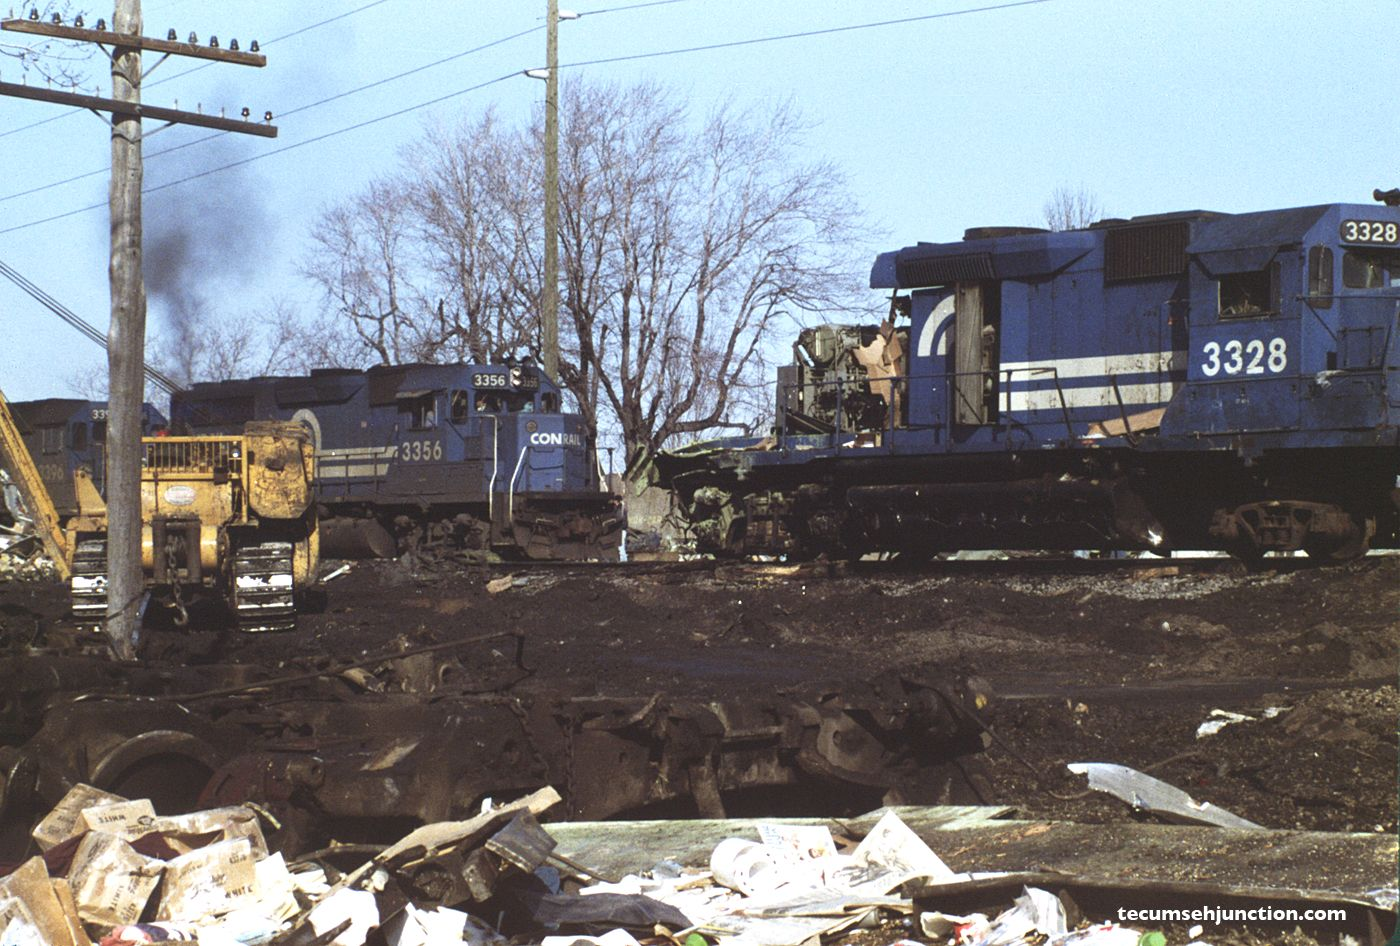 Conrail #3356 leads an eastbound train past the wreck site.